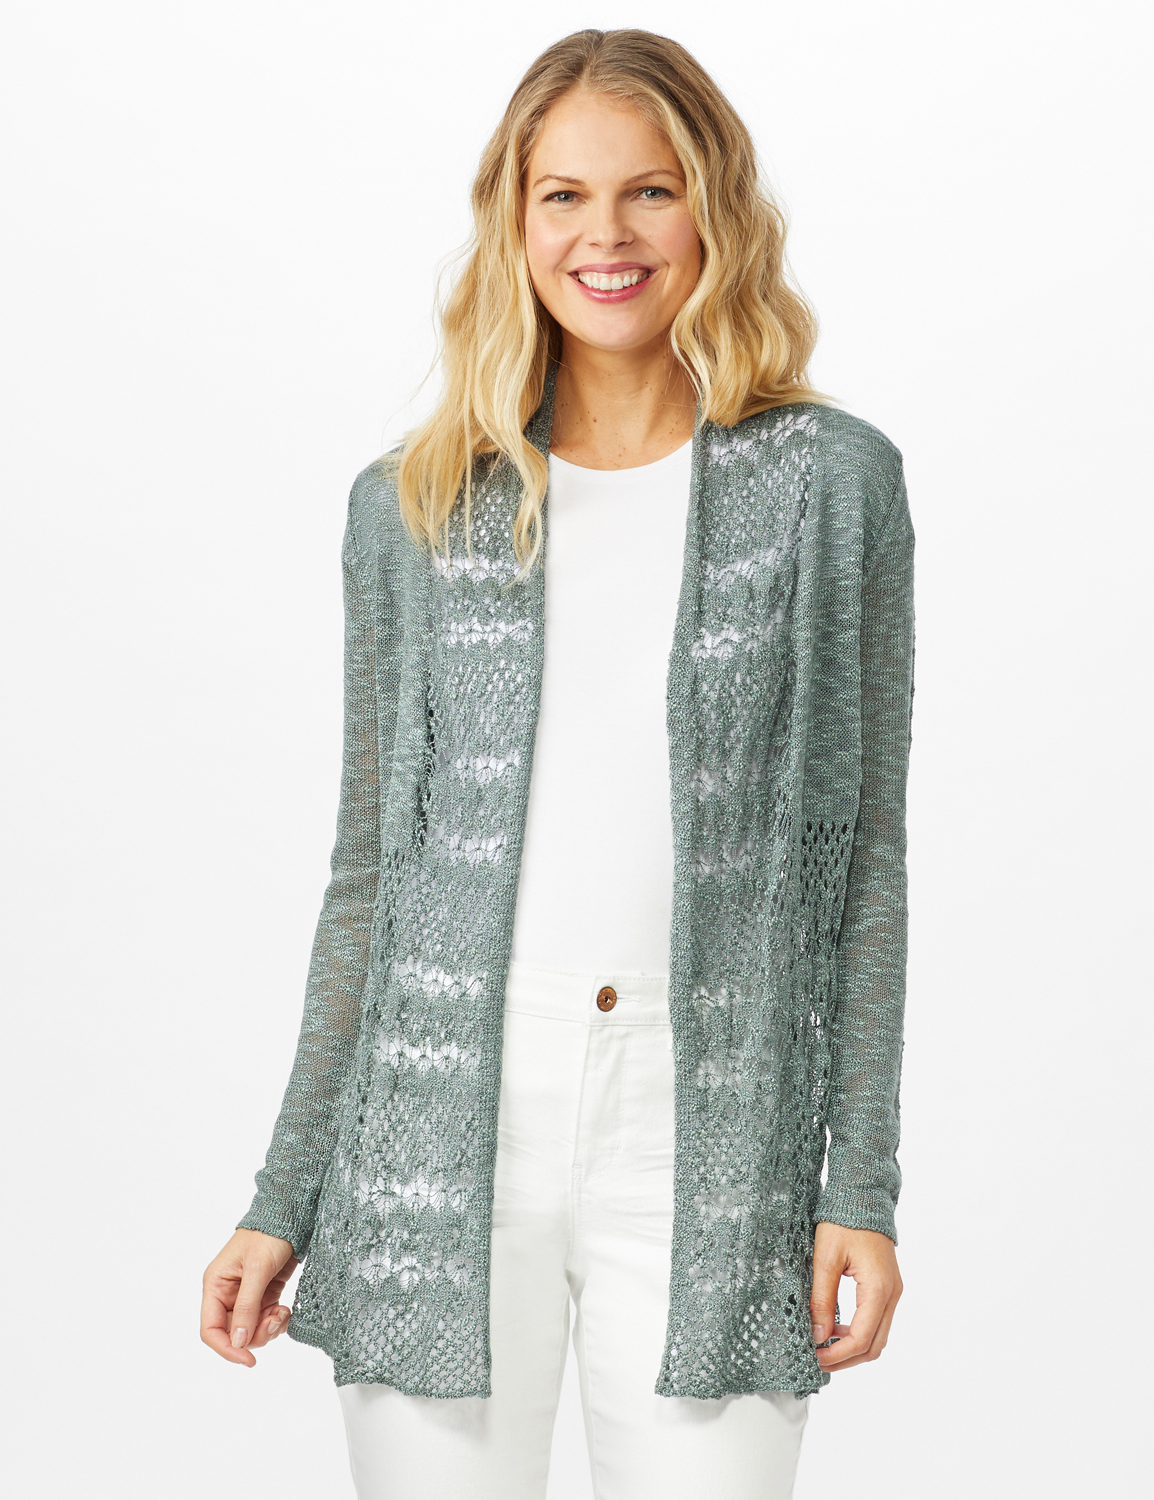 Textured Cardigan with Crochet Detail -Silver Moss - Front